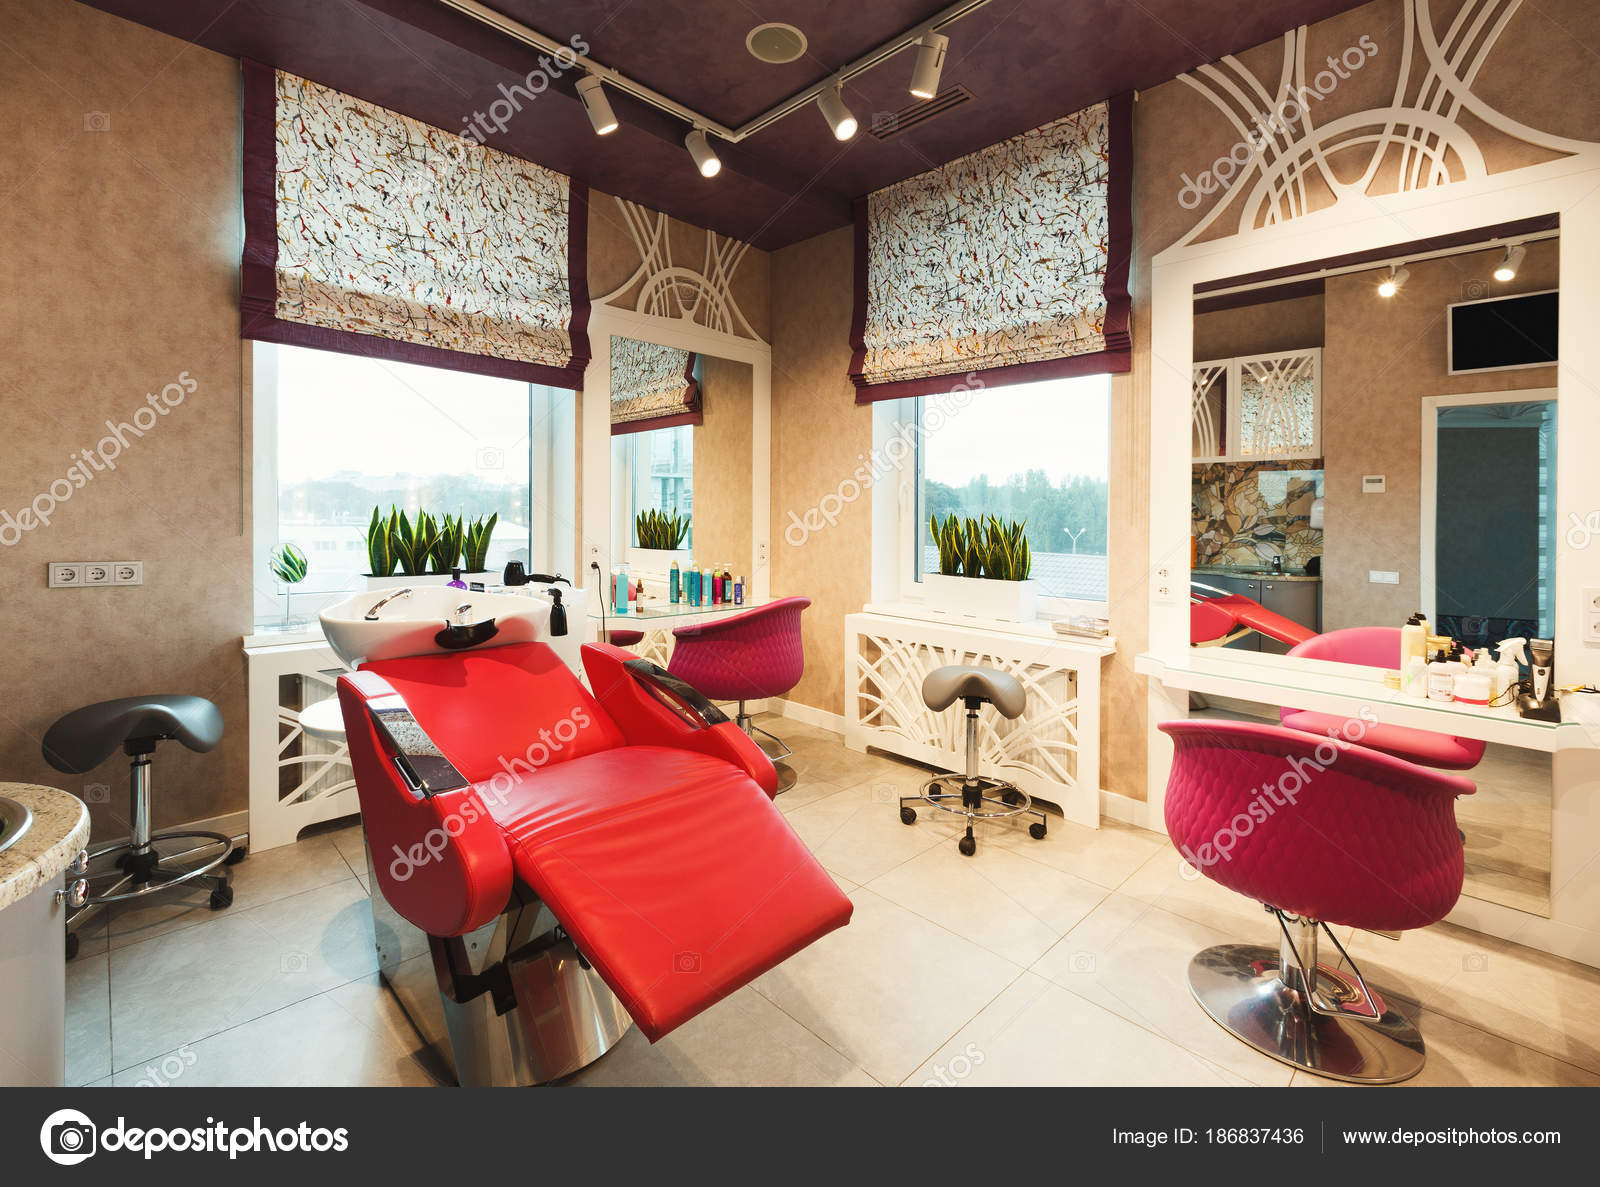 ᐈ Hair Salons Stock Photos Royalty Free Beauty Salon Interior Pictures Download On Depositphotos